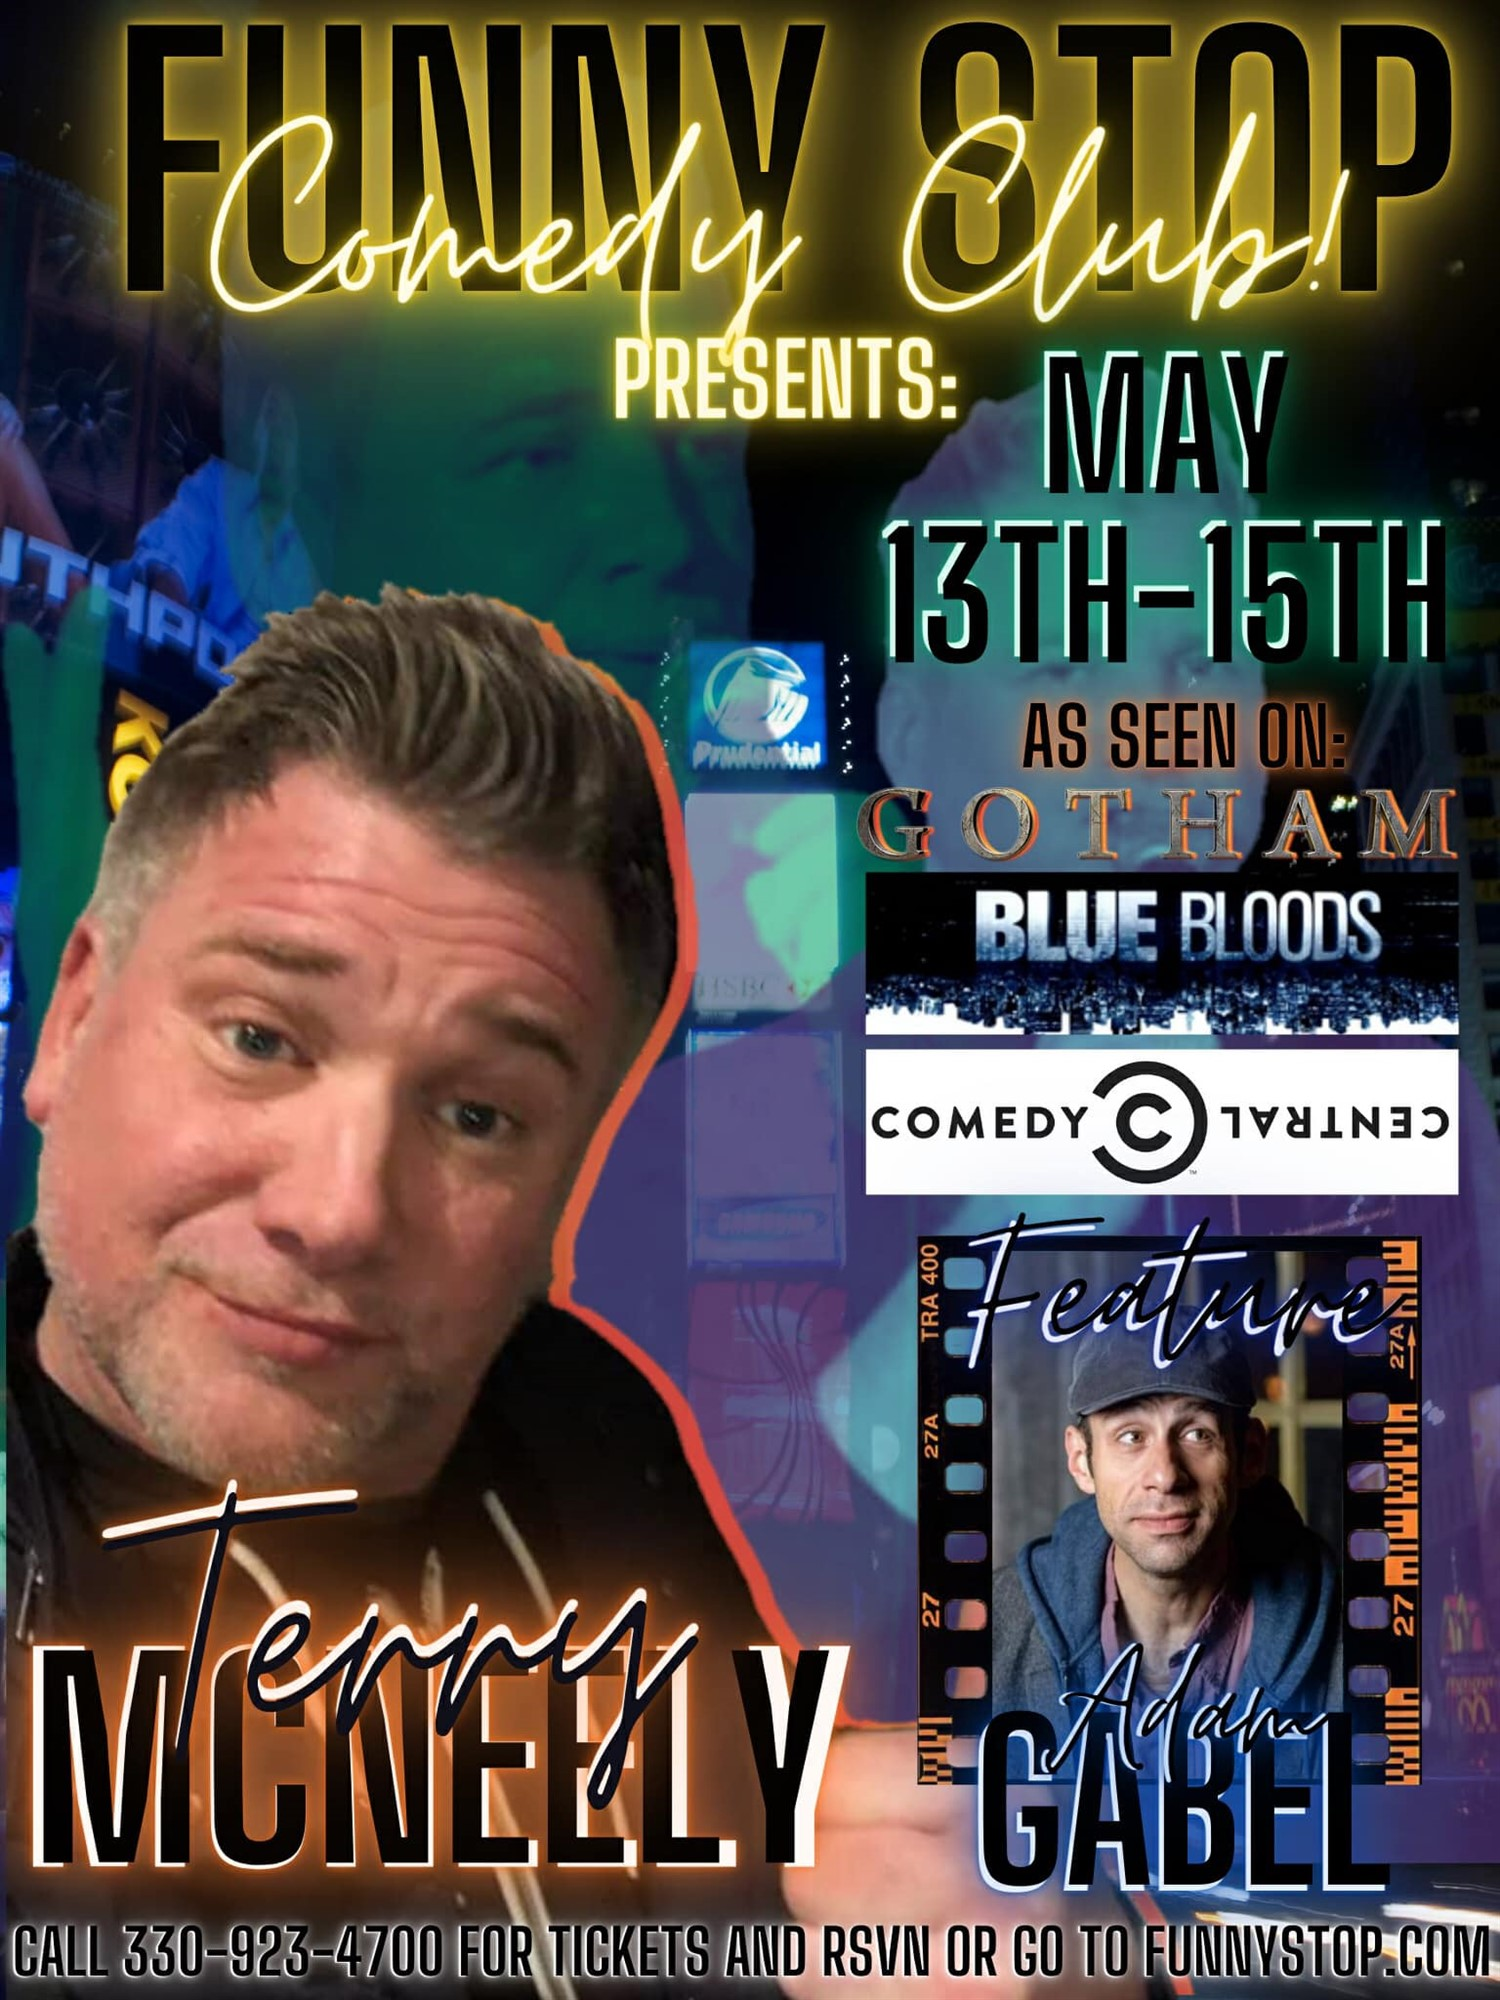 Terry McNeely Friday 7:20 Show Funny Stop Comedy Club on May 14, 19:20@Funny Stop Comedy Club - Buy tickets and Get information on Funny Stop funnystop.online